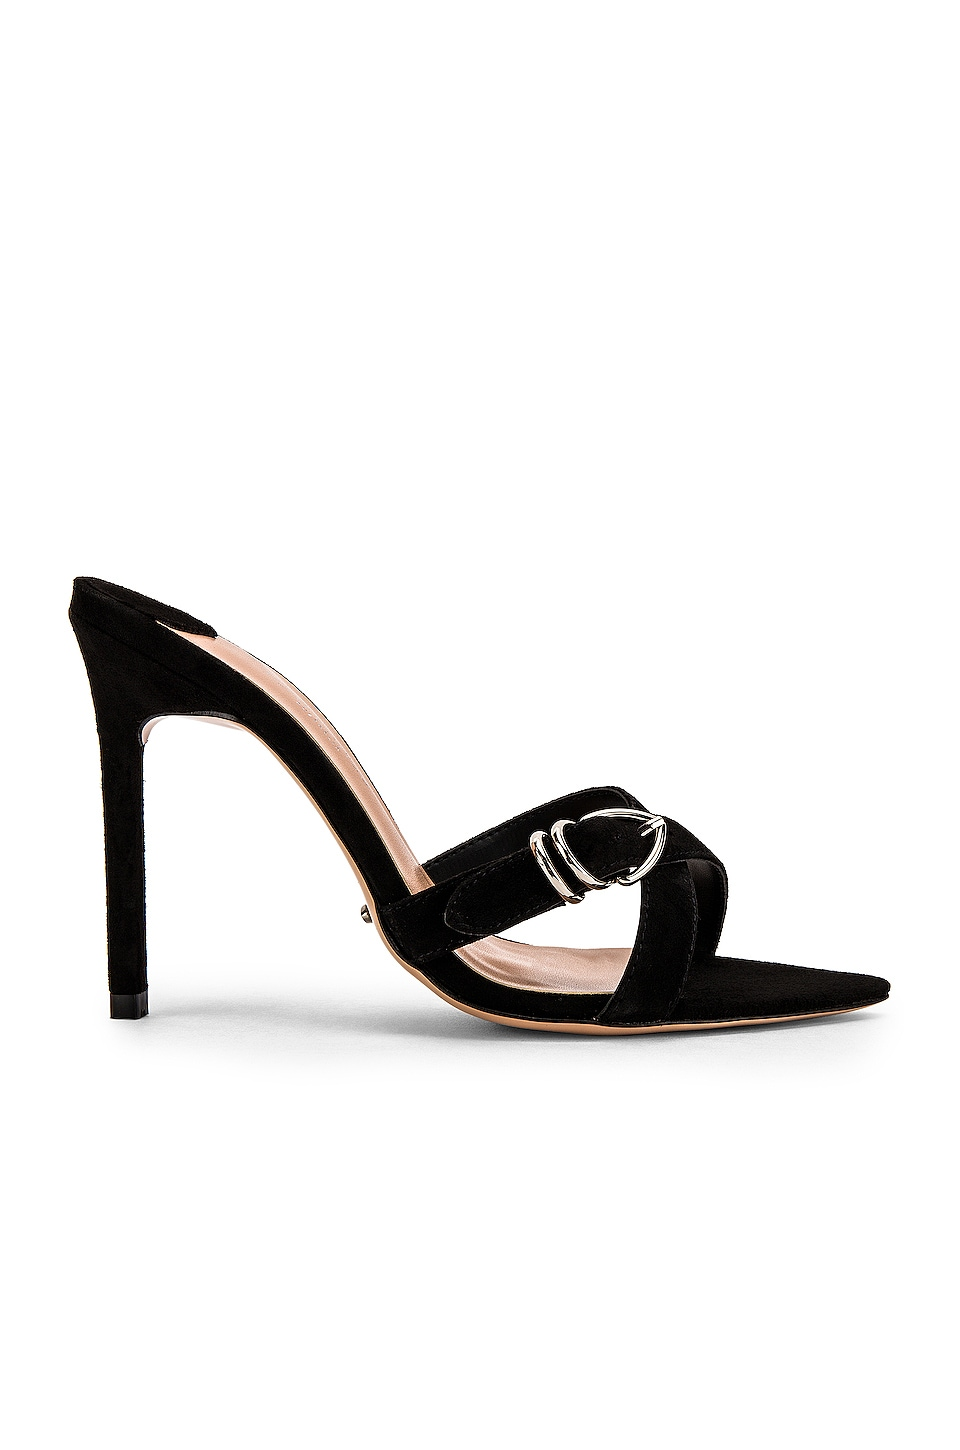 Tony Bianco Mikki Heel in Black Kid Suede